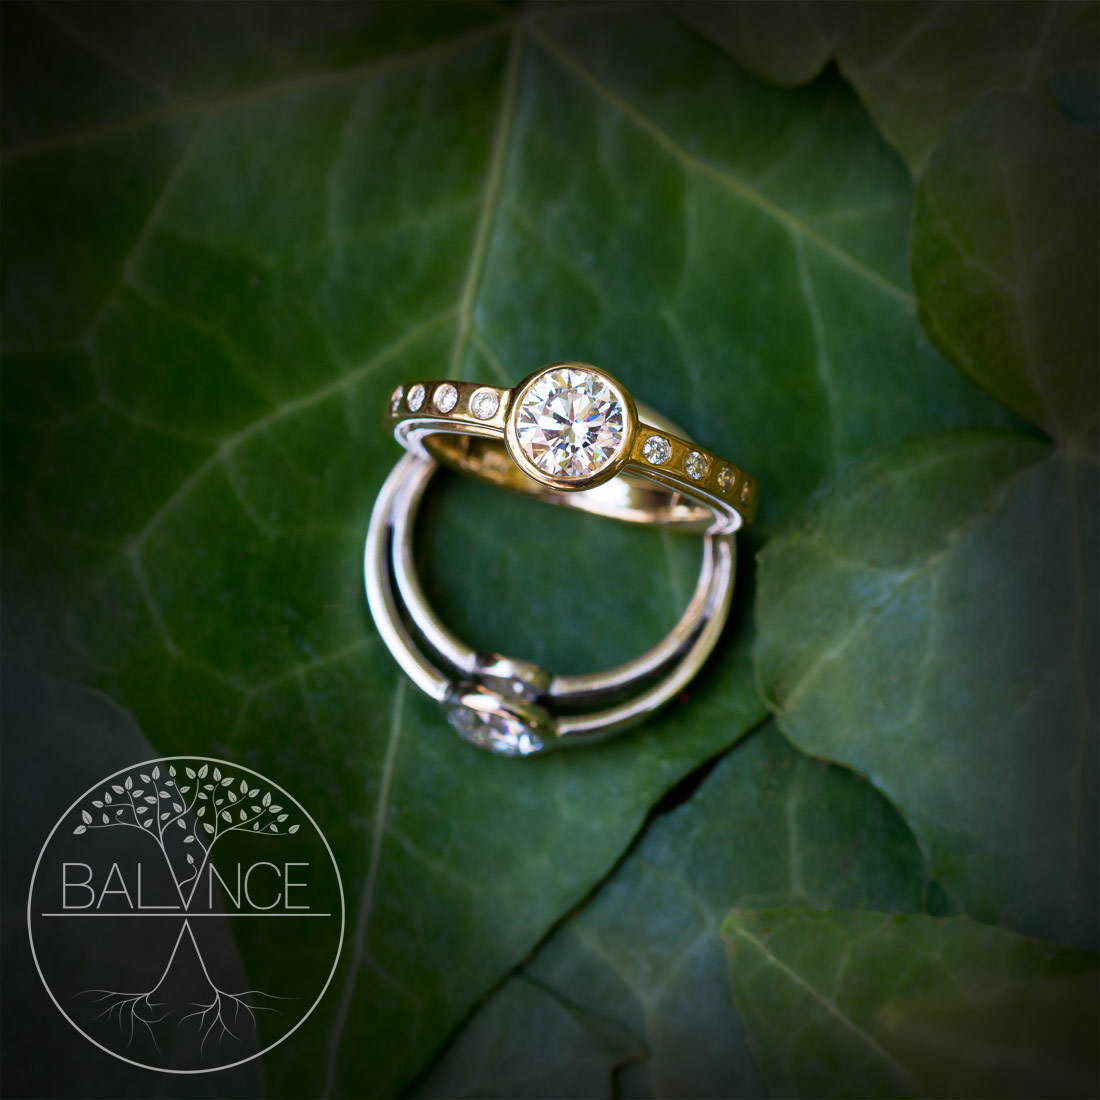 ethical on ring it engagement and rings wedding sustainable eco an to put friendly where shop